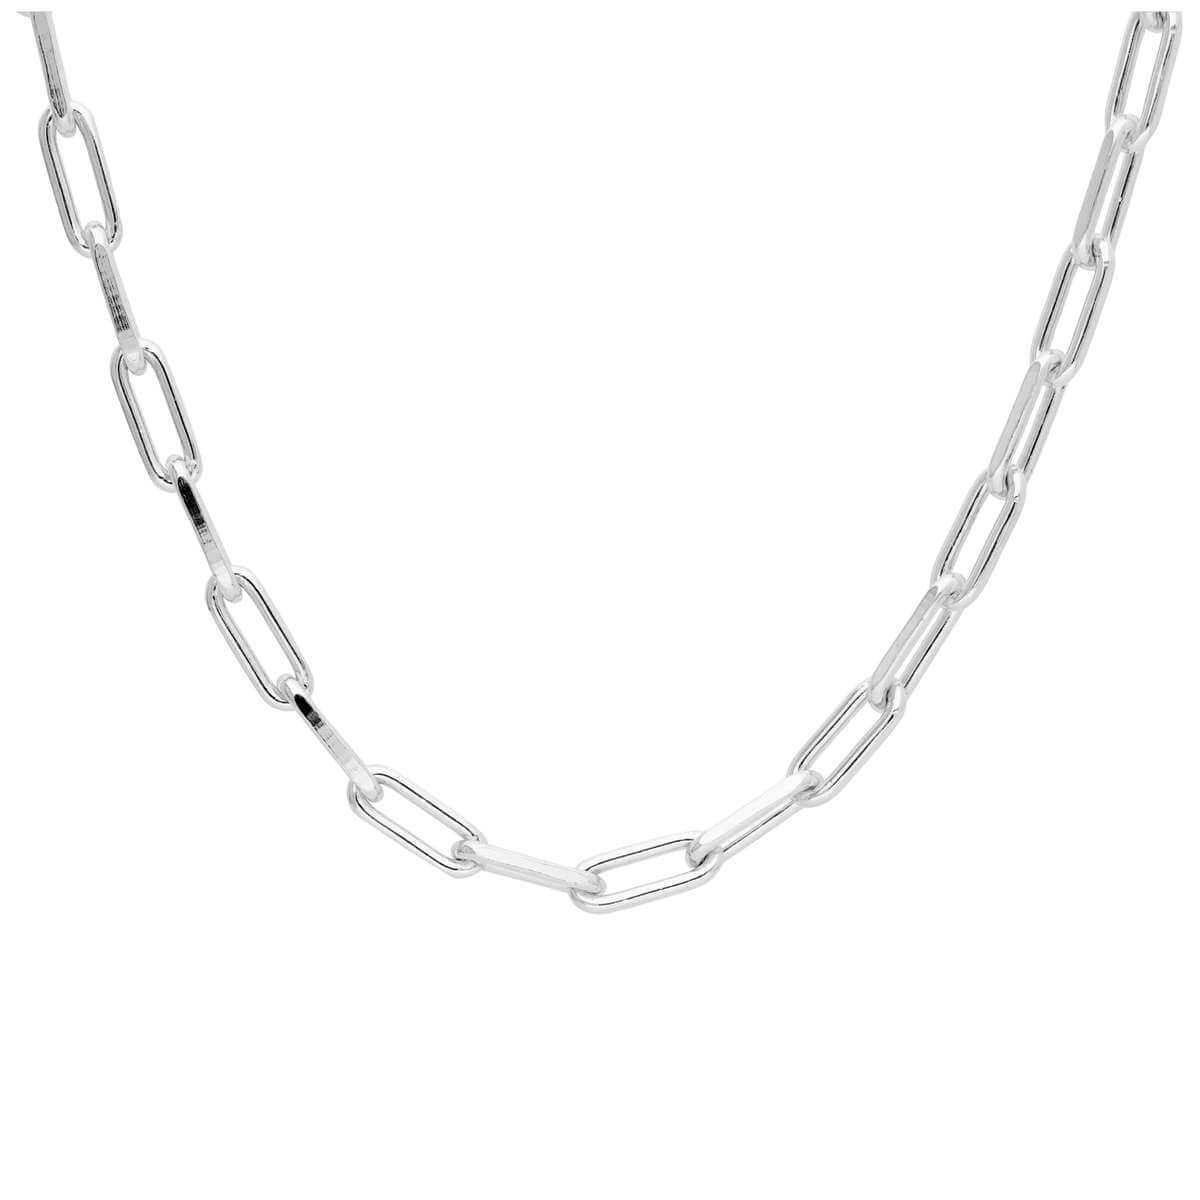 Sterling Silver Long Link Chain Choker Necklace 14-16 Inches